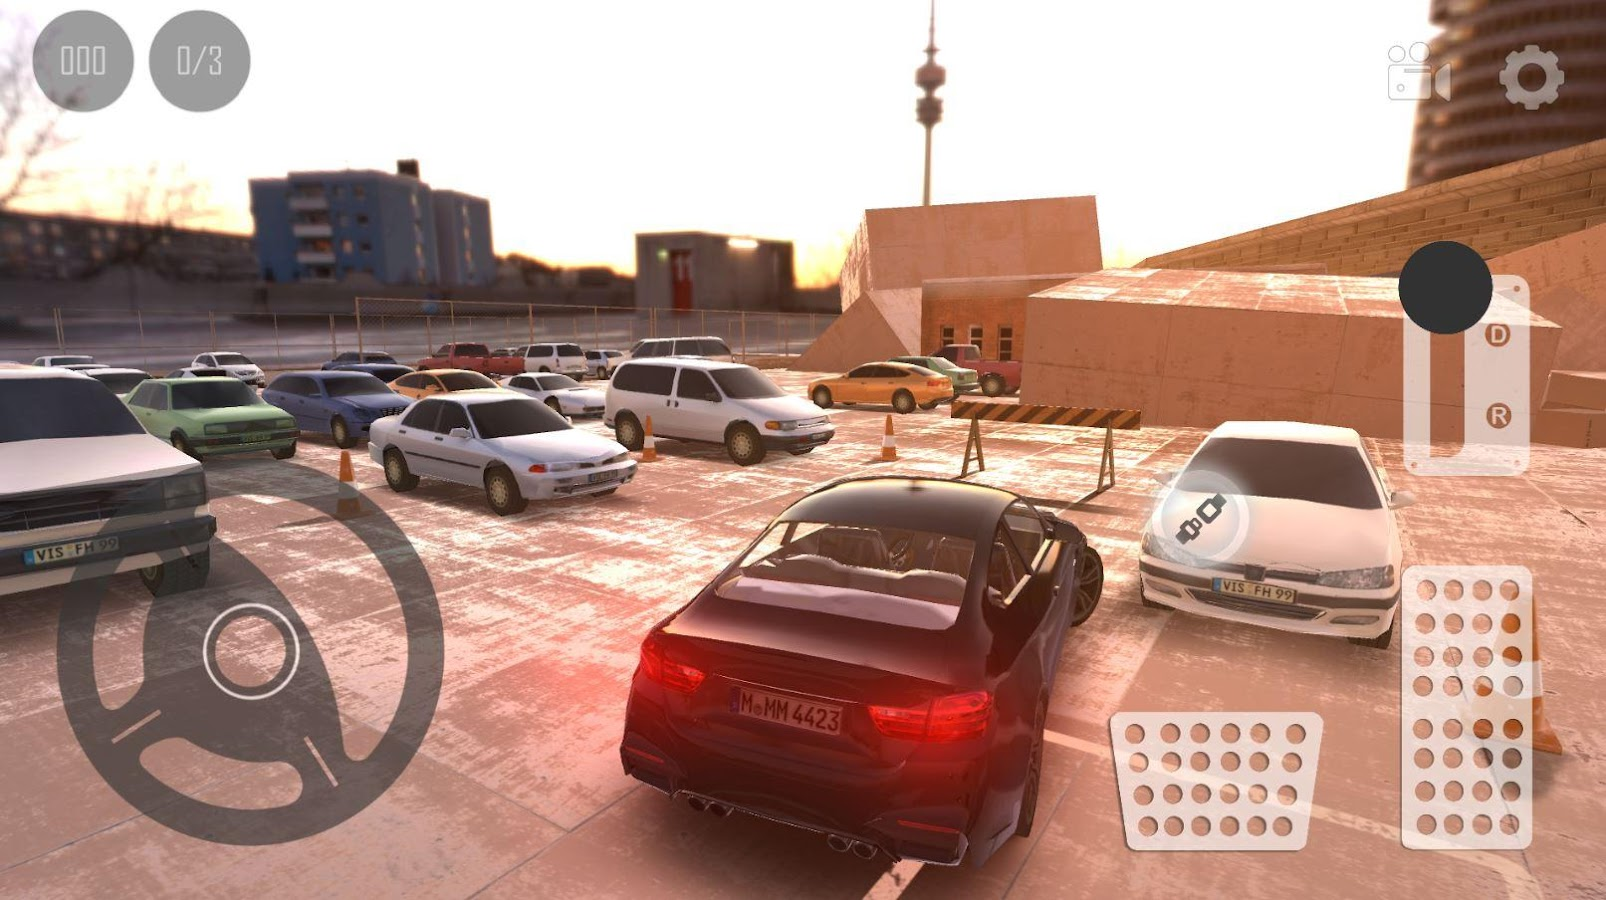 Real Car Parking 2017 Street 3D Screenshot 11